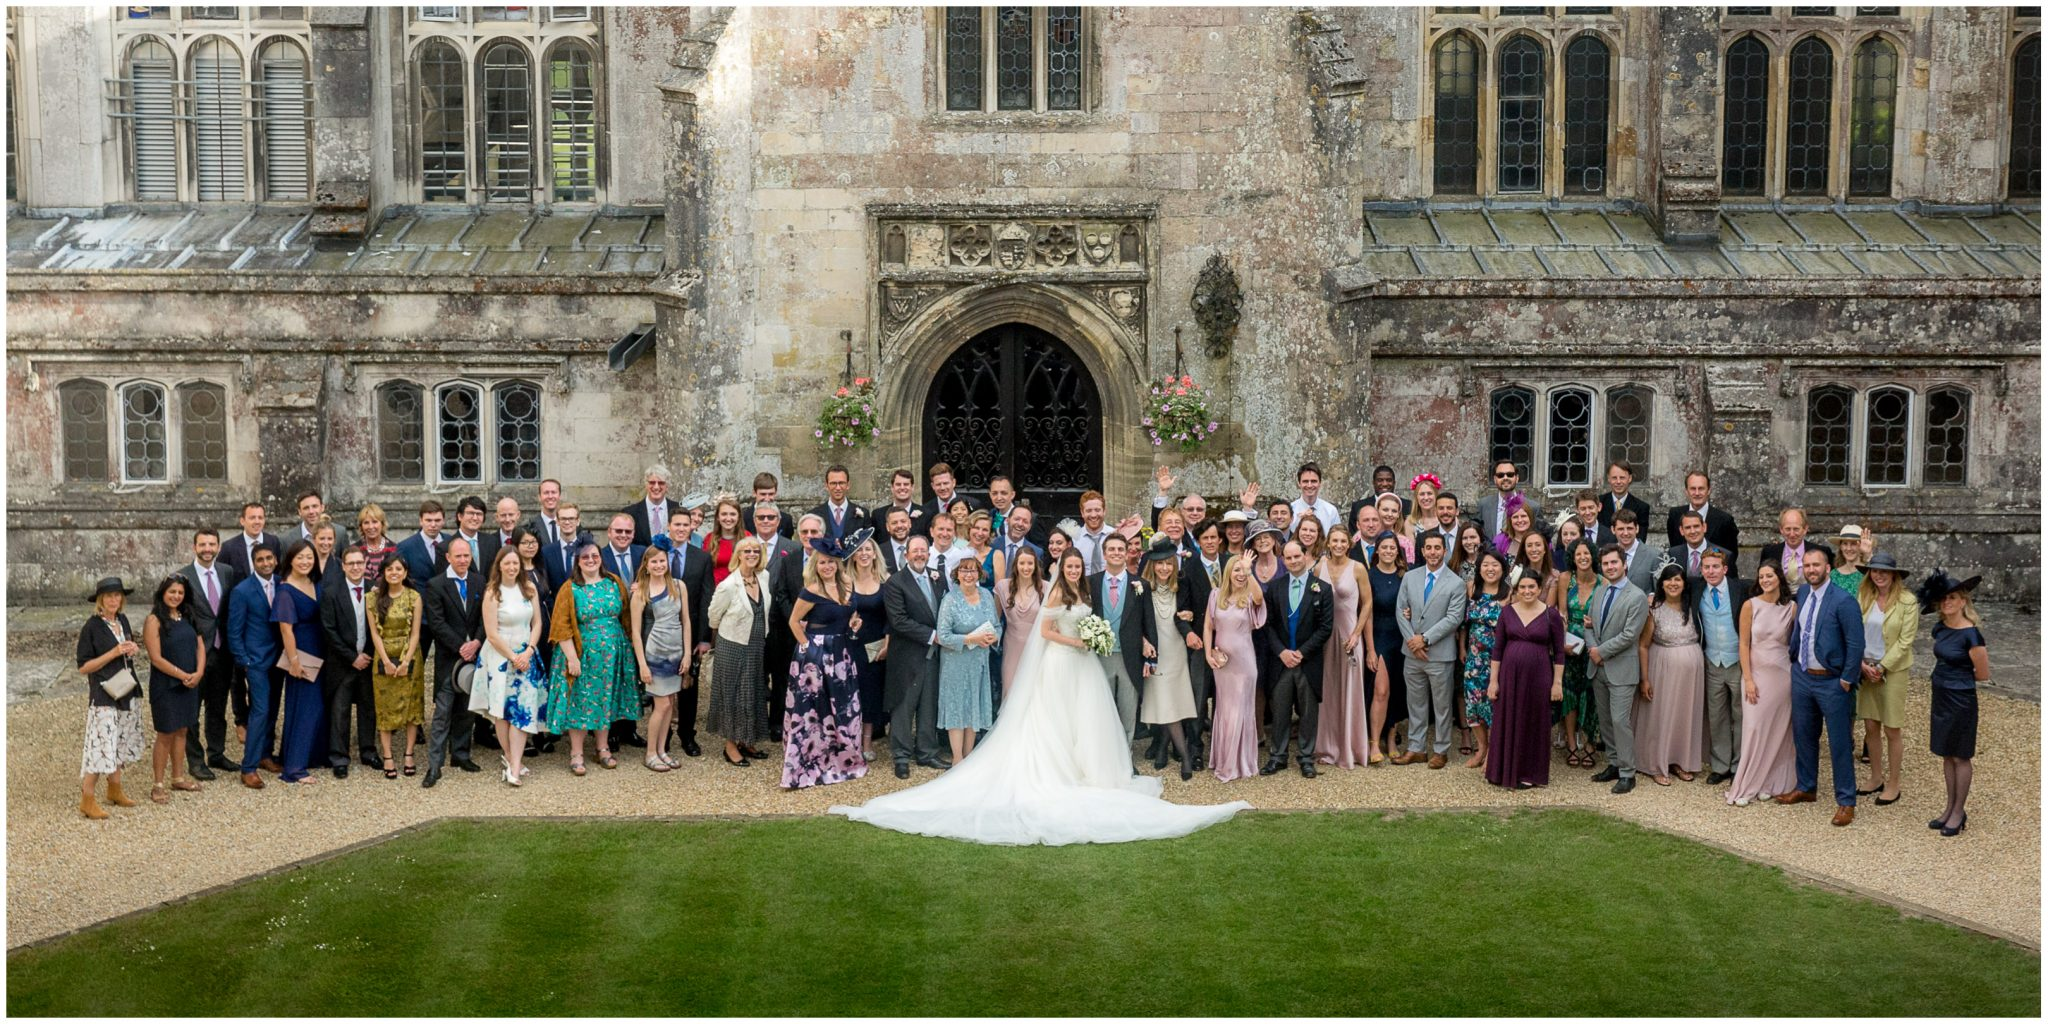 Photo of all the wedding guests in the quad